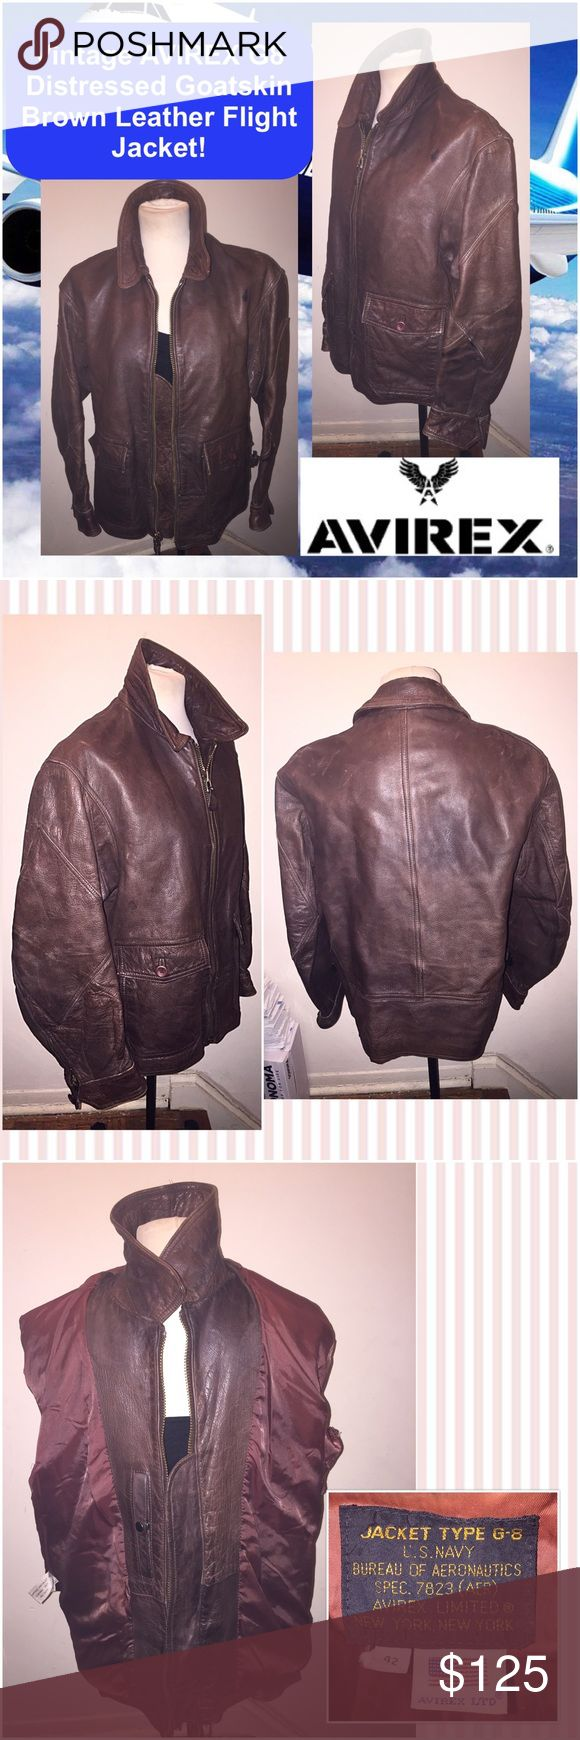 """Vtg AVIREX G8 Goatskin Leather Flight Jacket! Vintage Cool Avirex G8 Distressed Goatskin Brown Leather Flight Jacket! UNISEX 80's piece, brown goatskin leather, front zip, zip & button sleeves, dual entry pockets, wind flap, int snap pocket. Sz 42, Chest: 23"""" across (outside), Shoulder: 20"""" across, Sleeve: 31"""" (side of neck to sleeve end), Pit to sleeve end: 17 1/2"""", Waist: 44"""" around, Back length: 24. Missing 1 sleeve cuff button & belt was removed. Some ext scratches & wear - adds to cool…"""